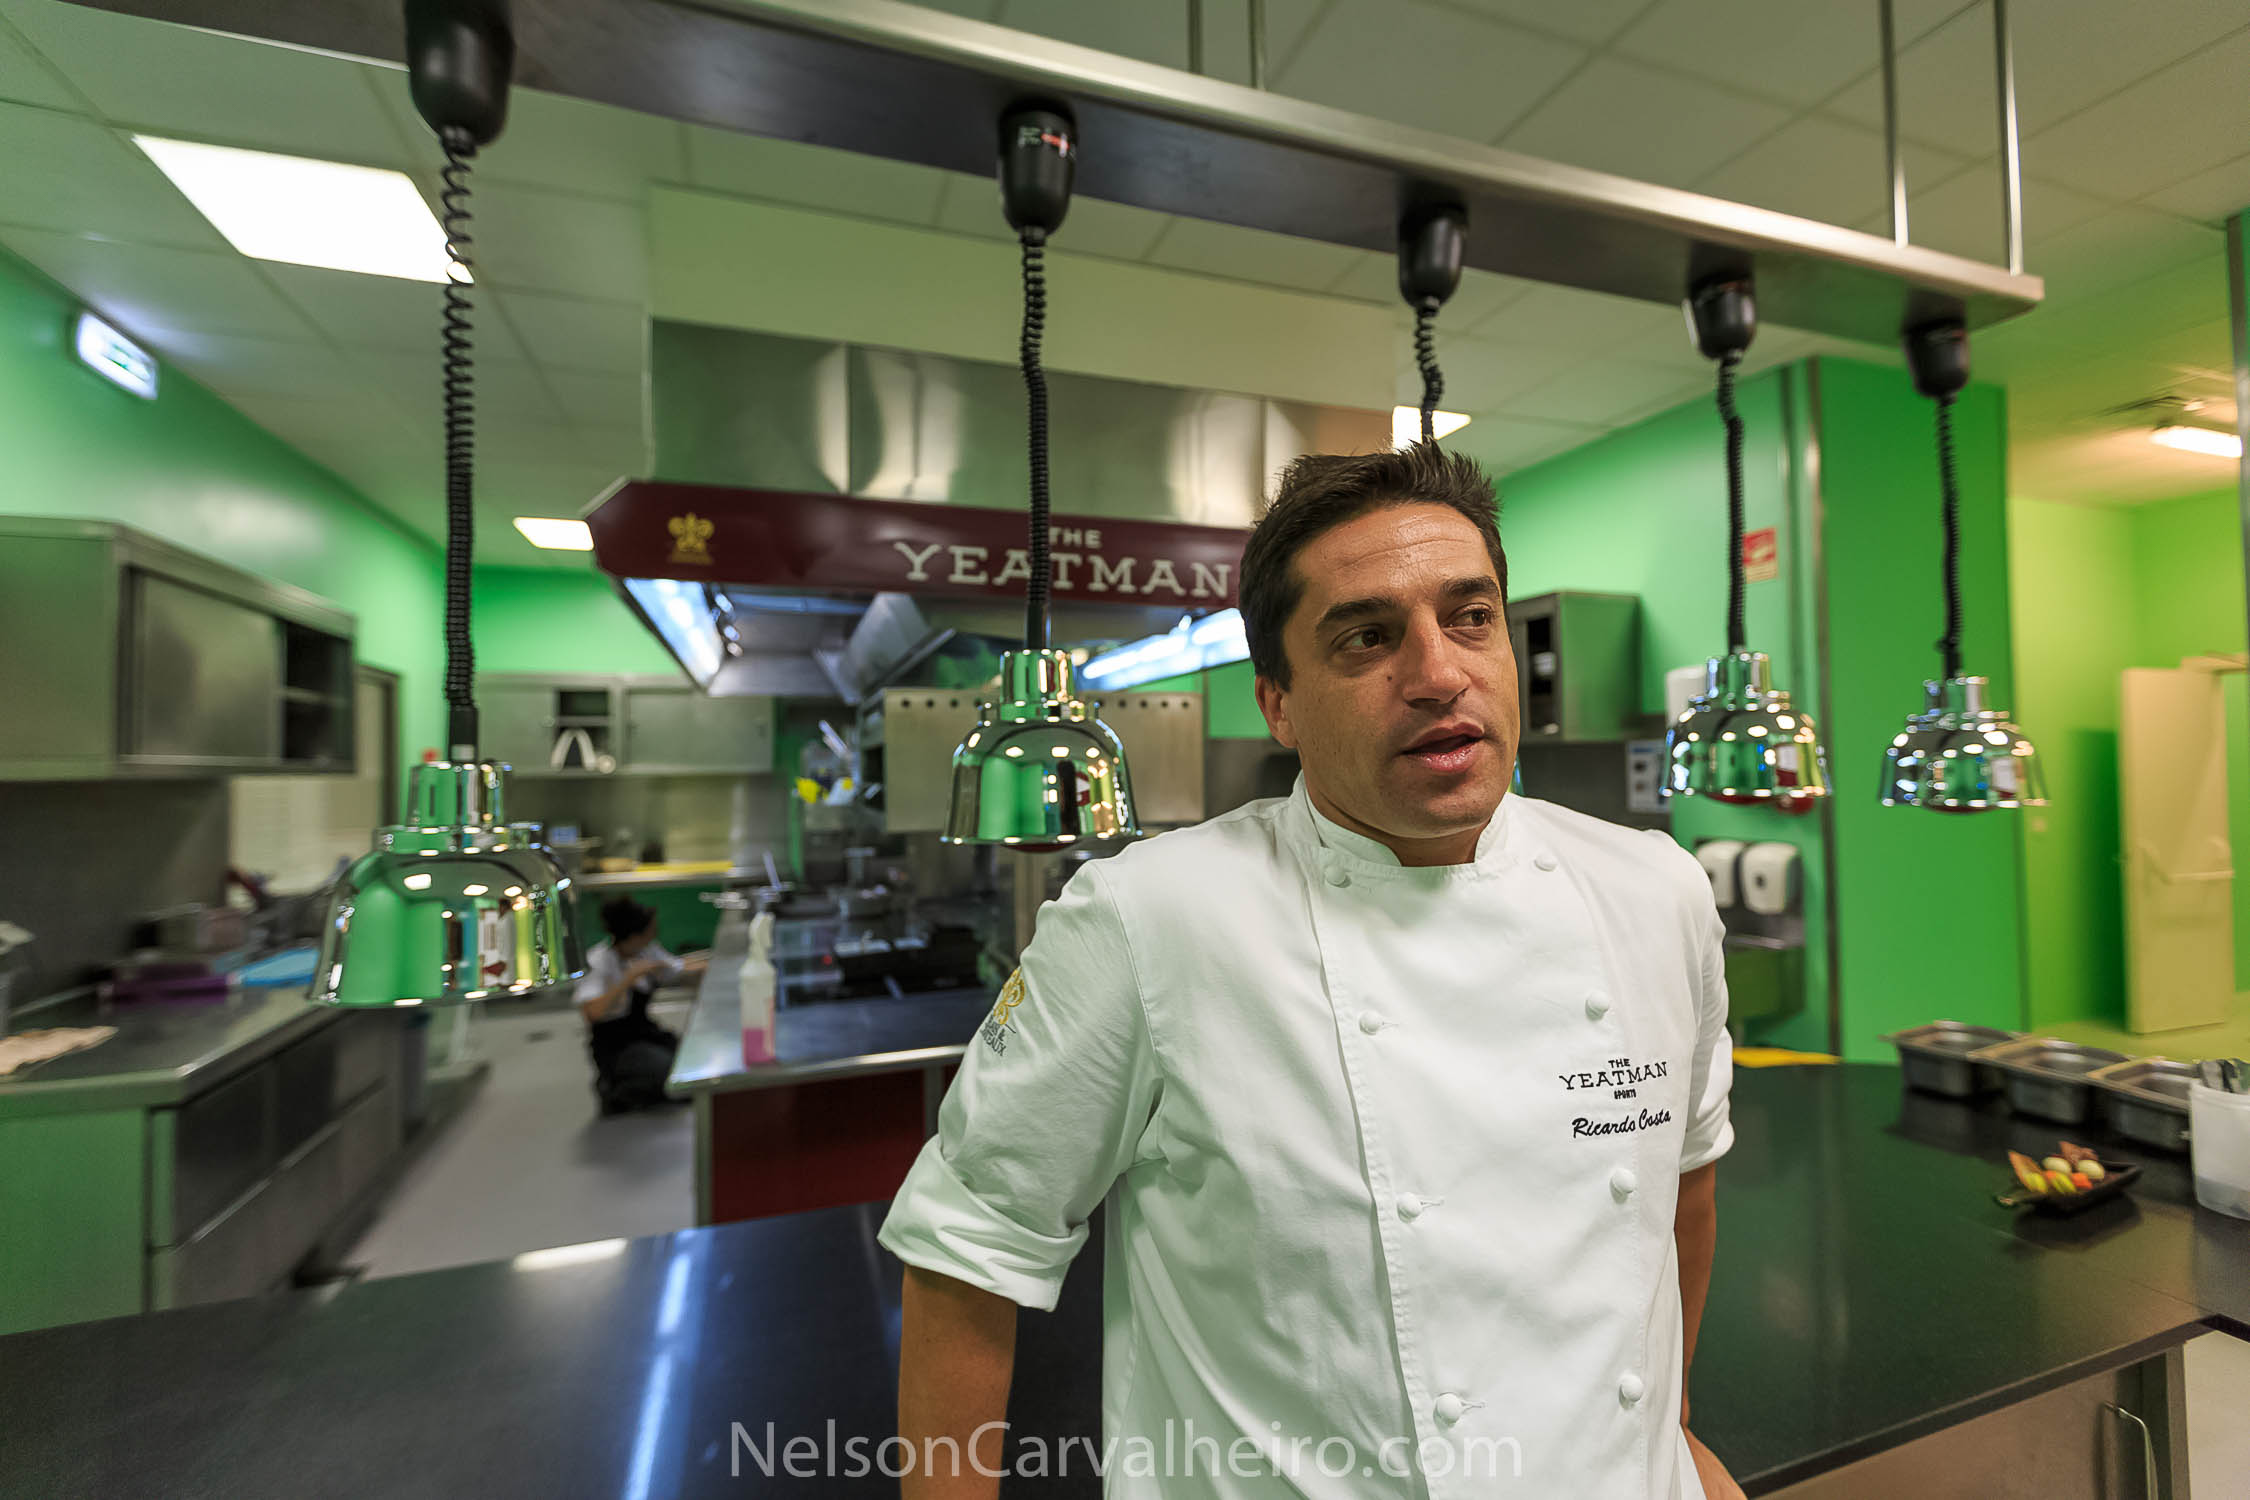 Nelson_Carvalheiro_The_Yeatman_Gastronomic_Restaurant-1-2